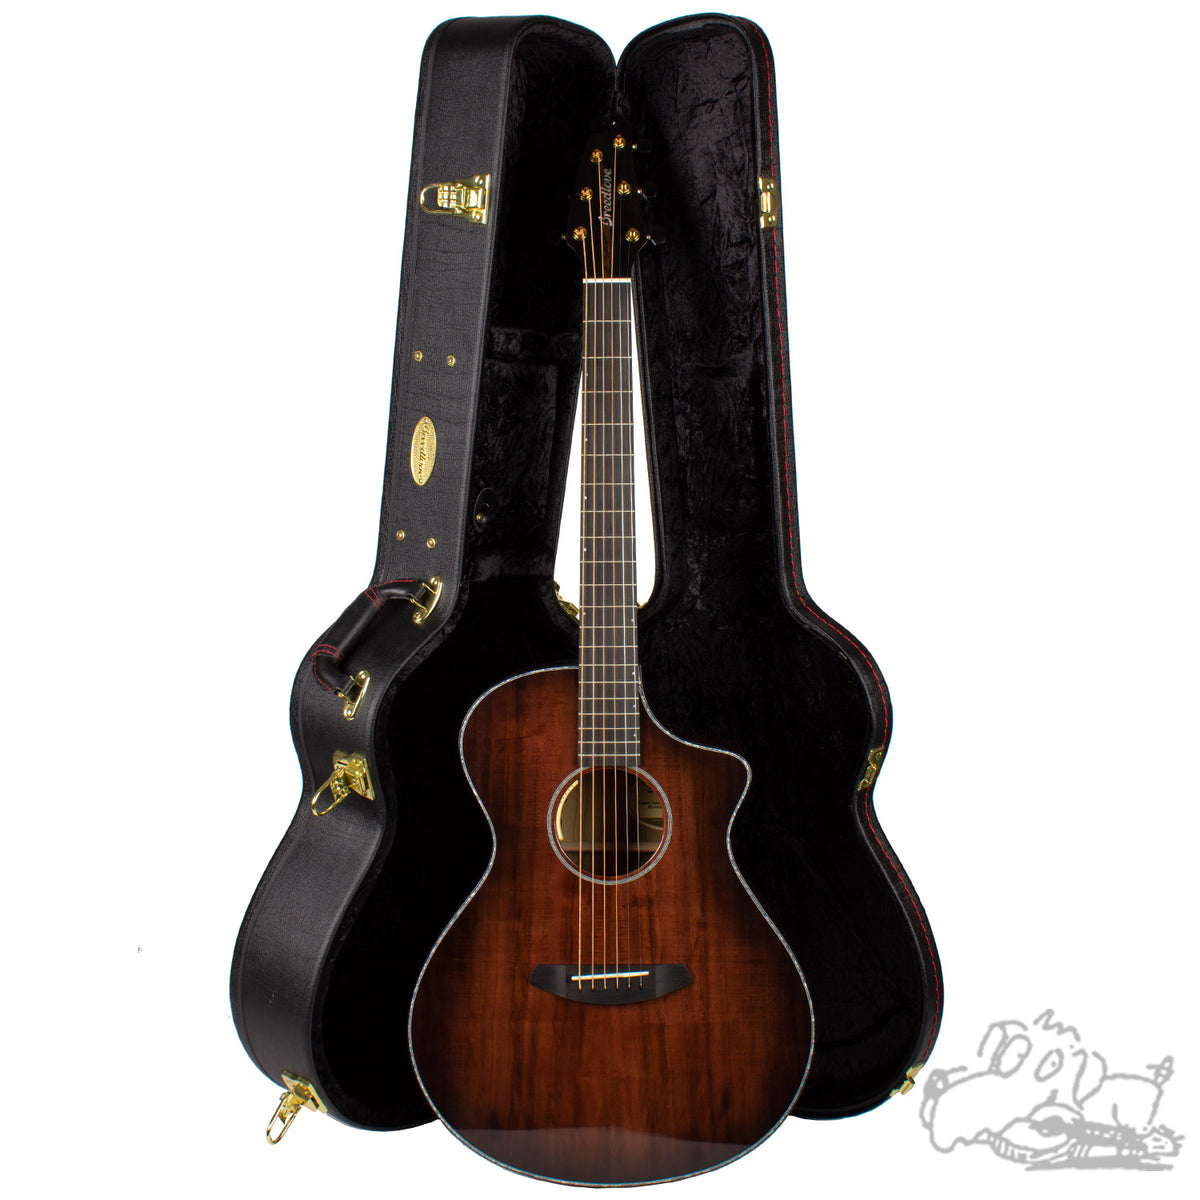 Breedlove Oregon Concert Black Cherry CE LTD Myrtlewood - Myrtlewood